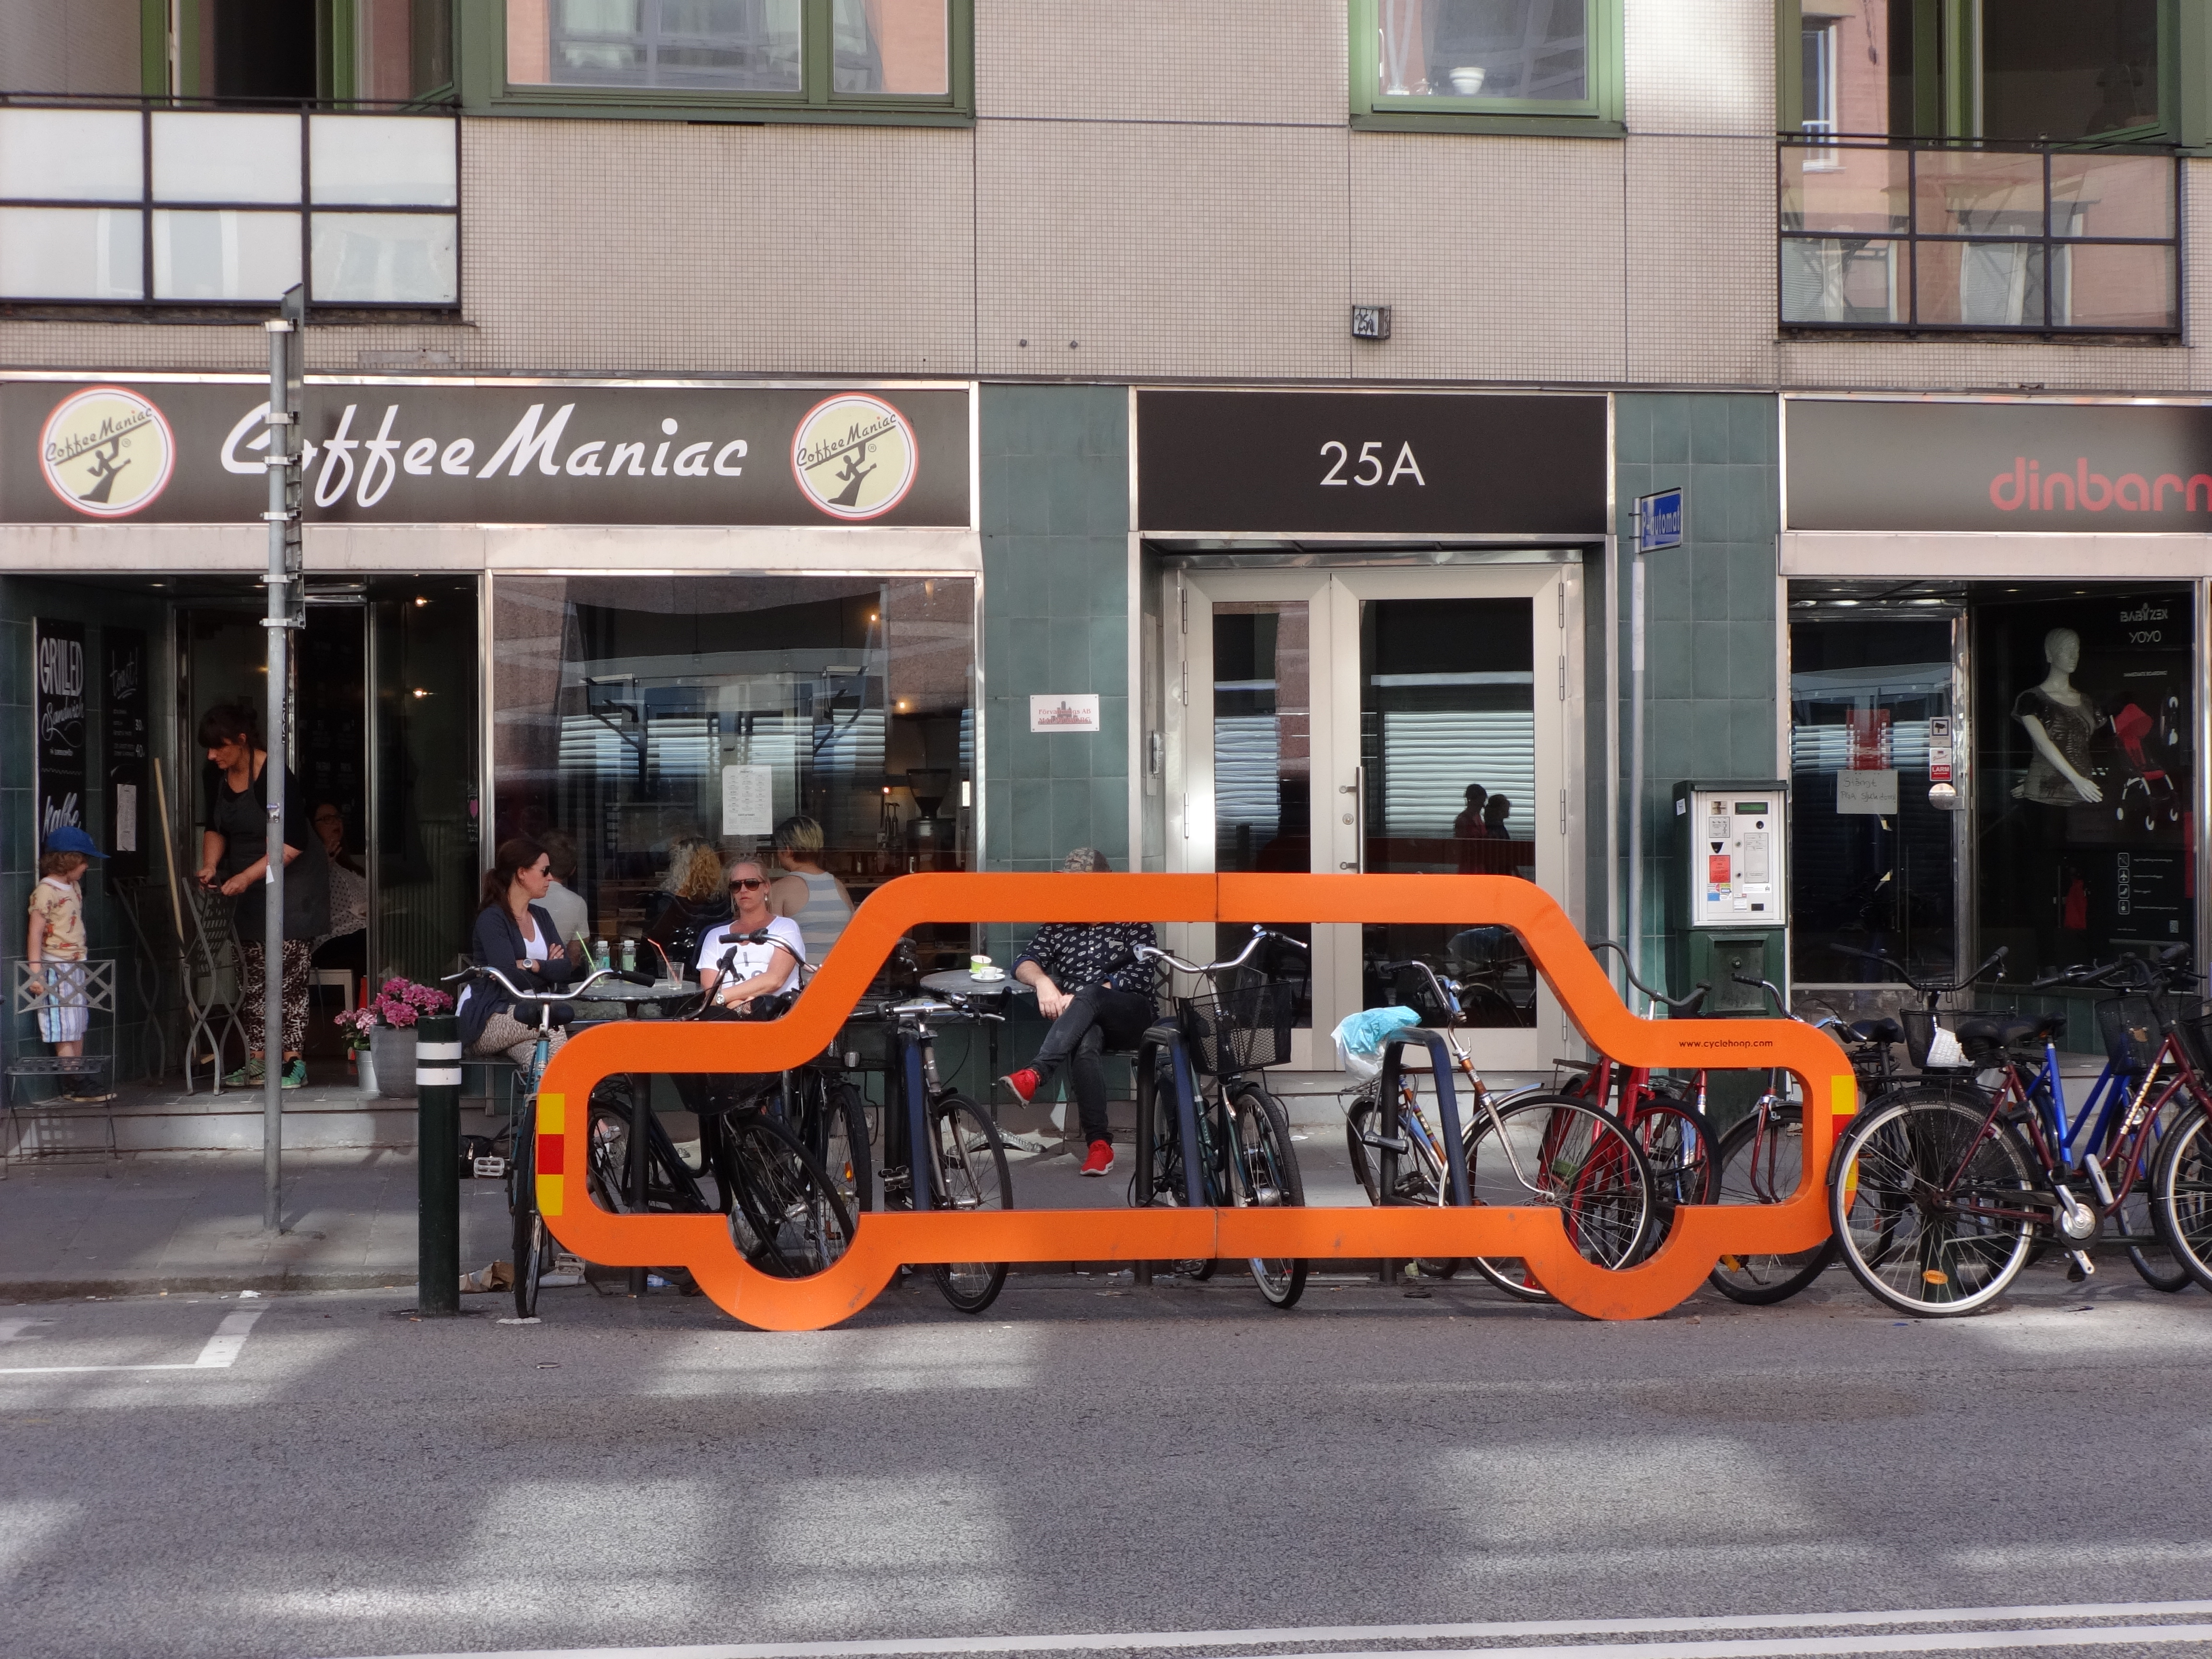 I found this really powerful, a representation of how many bikes can take the space of one car.